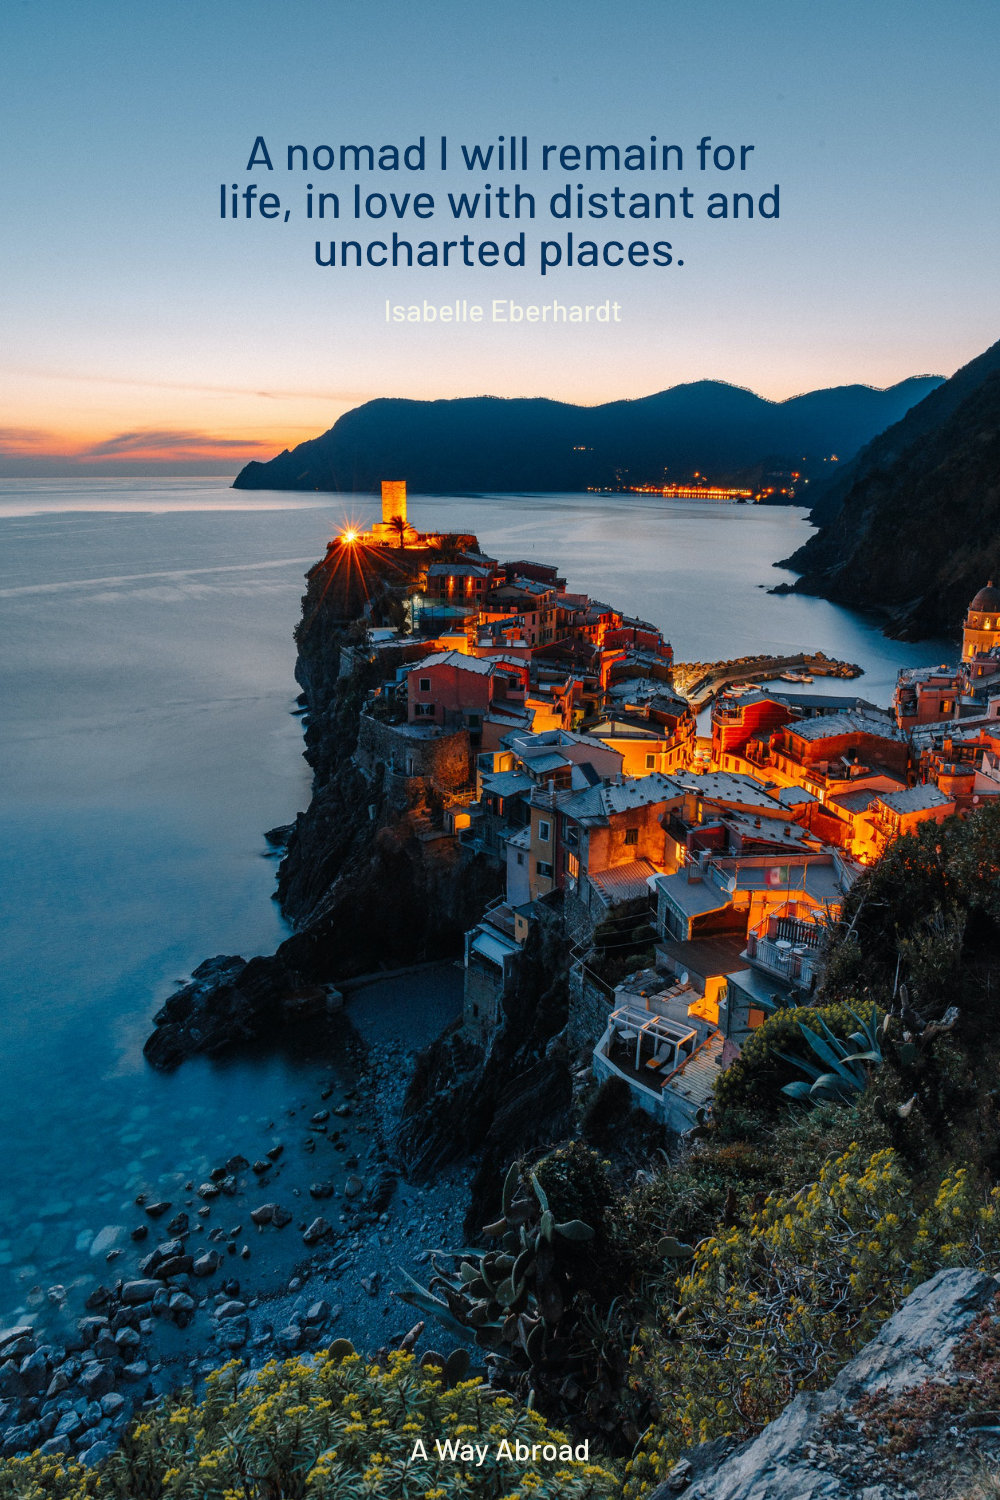 European town on a rocky peninsula at the sunset